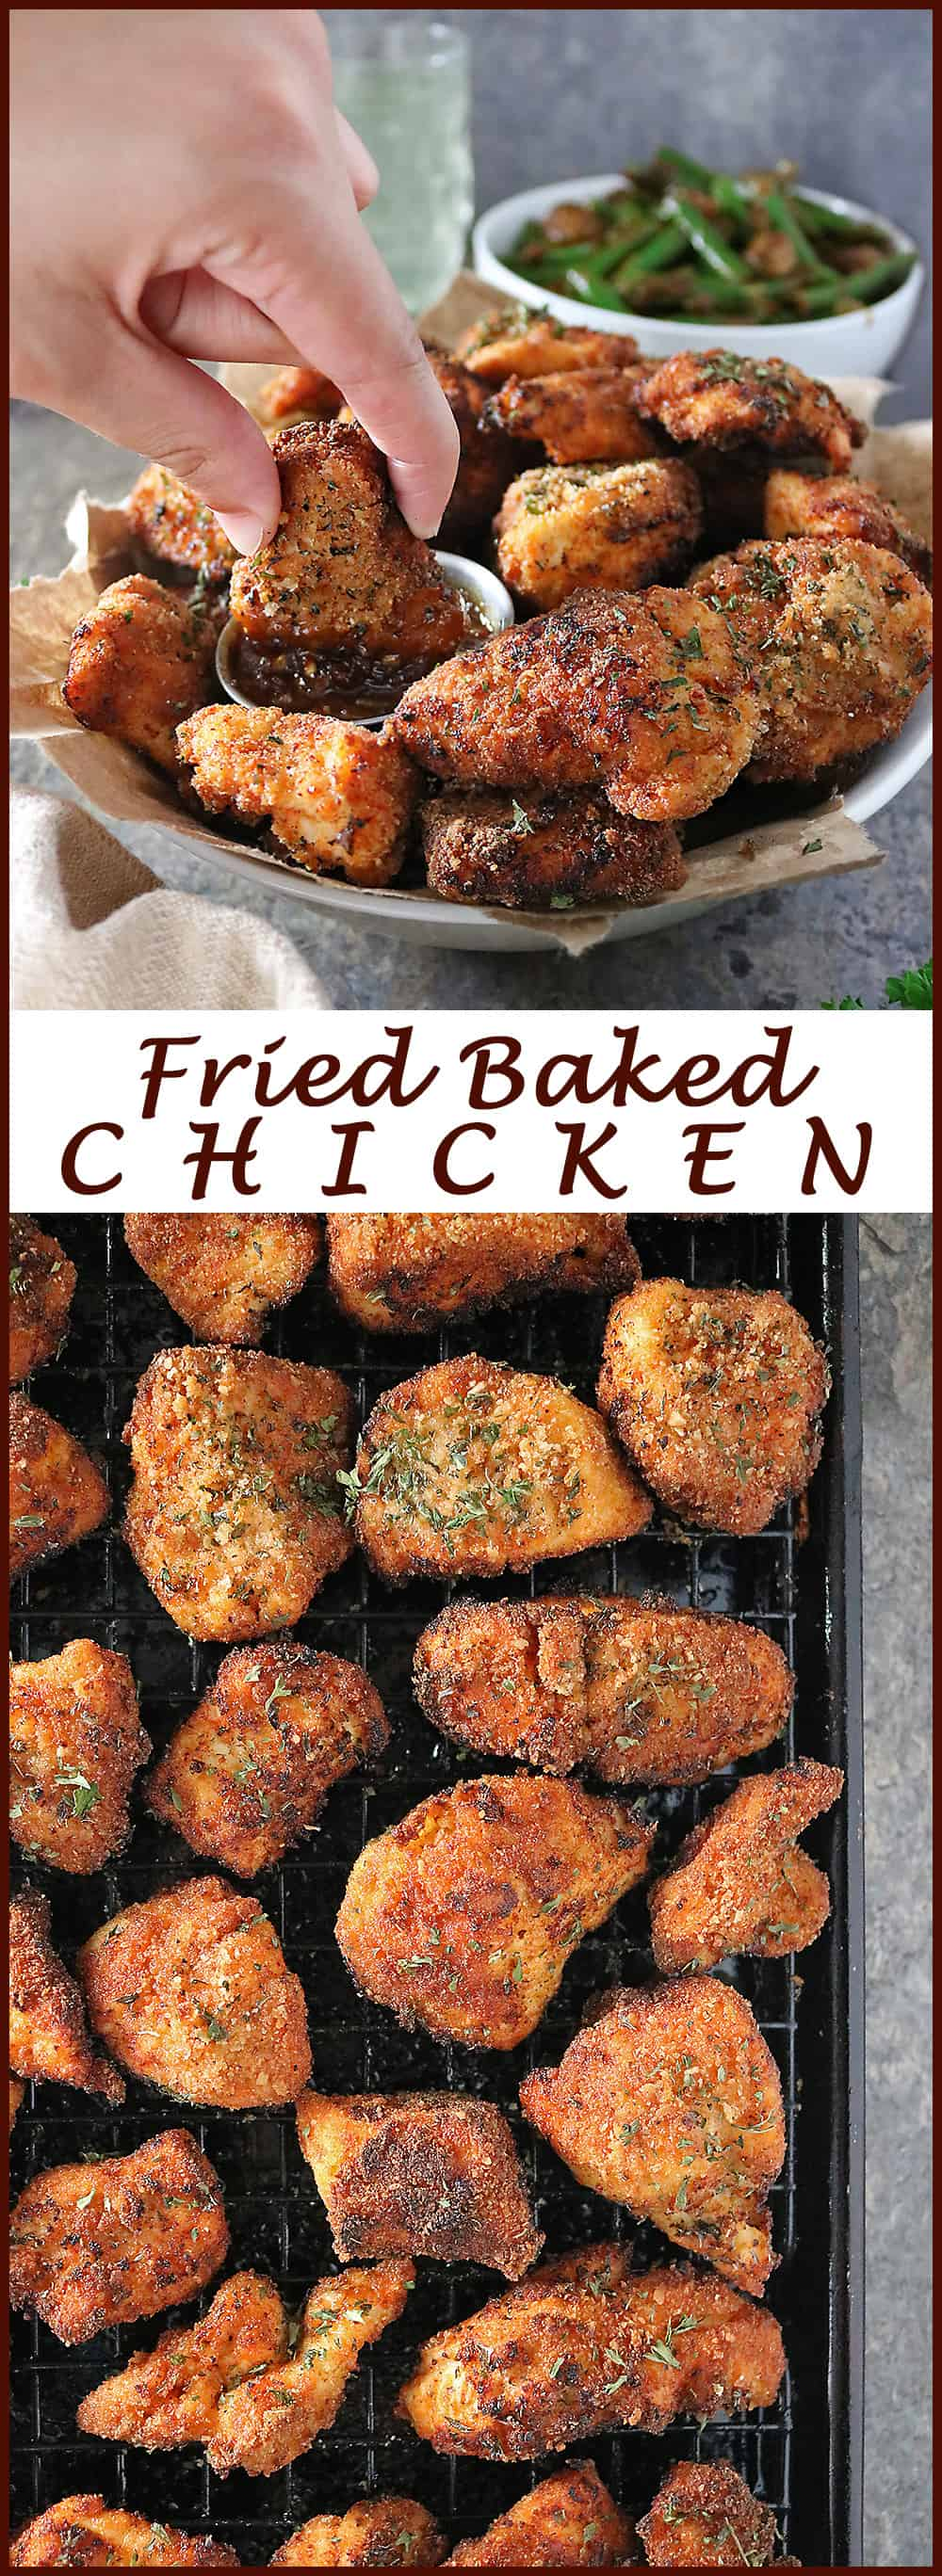 Spiced Fried Baked Chicken Inspired By Eats On The #FarmFoodTour Photo